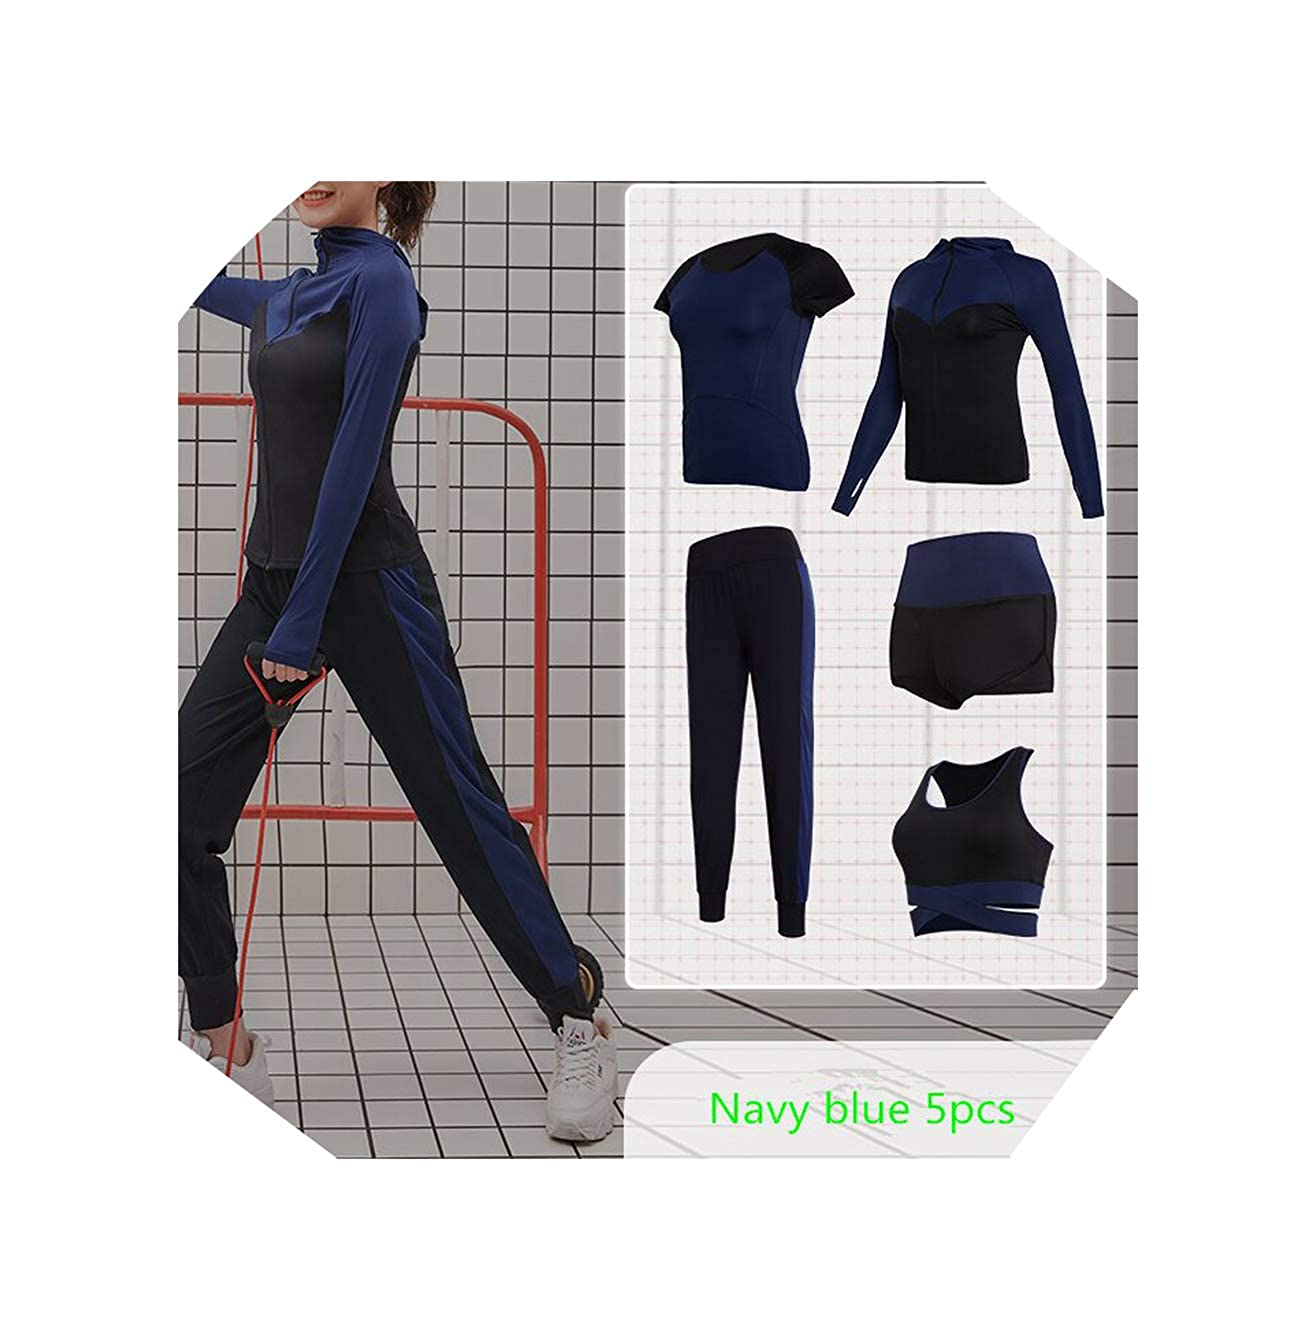 Bats 4376 WBeauty Women's Yoga Clothes Set Running Tights Sportswear Quick Dry